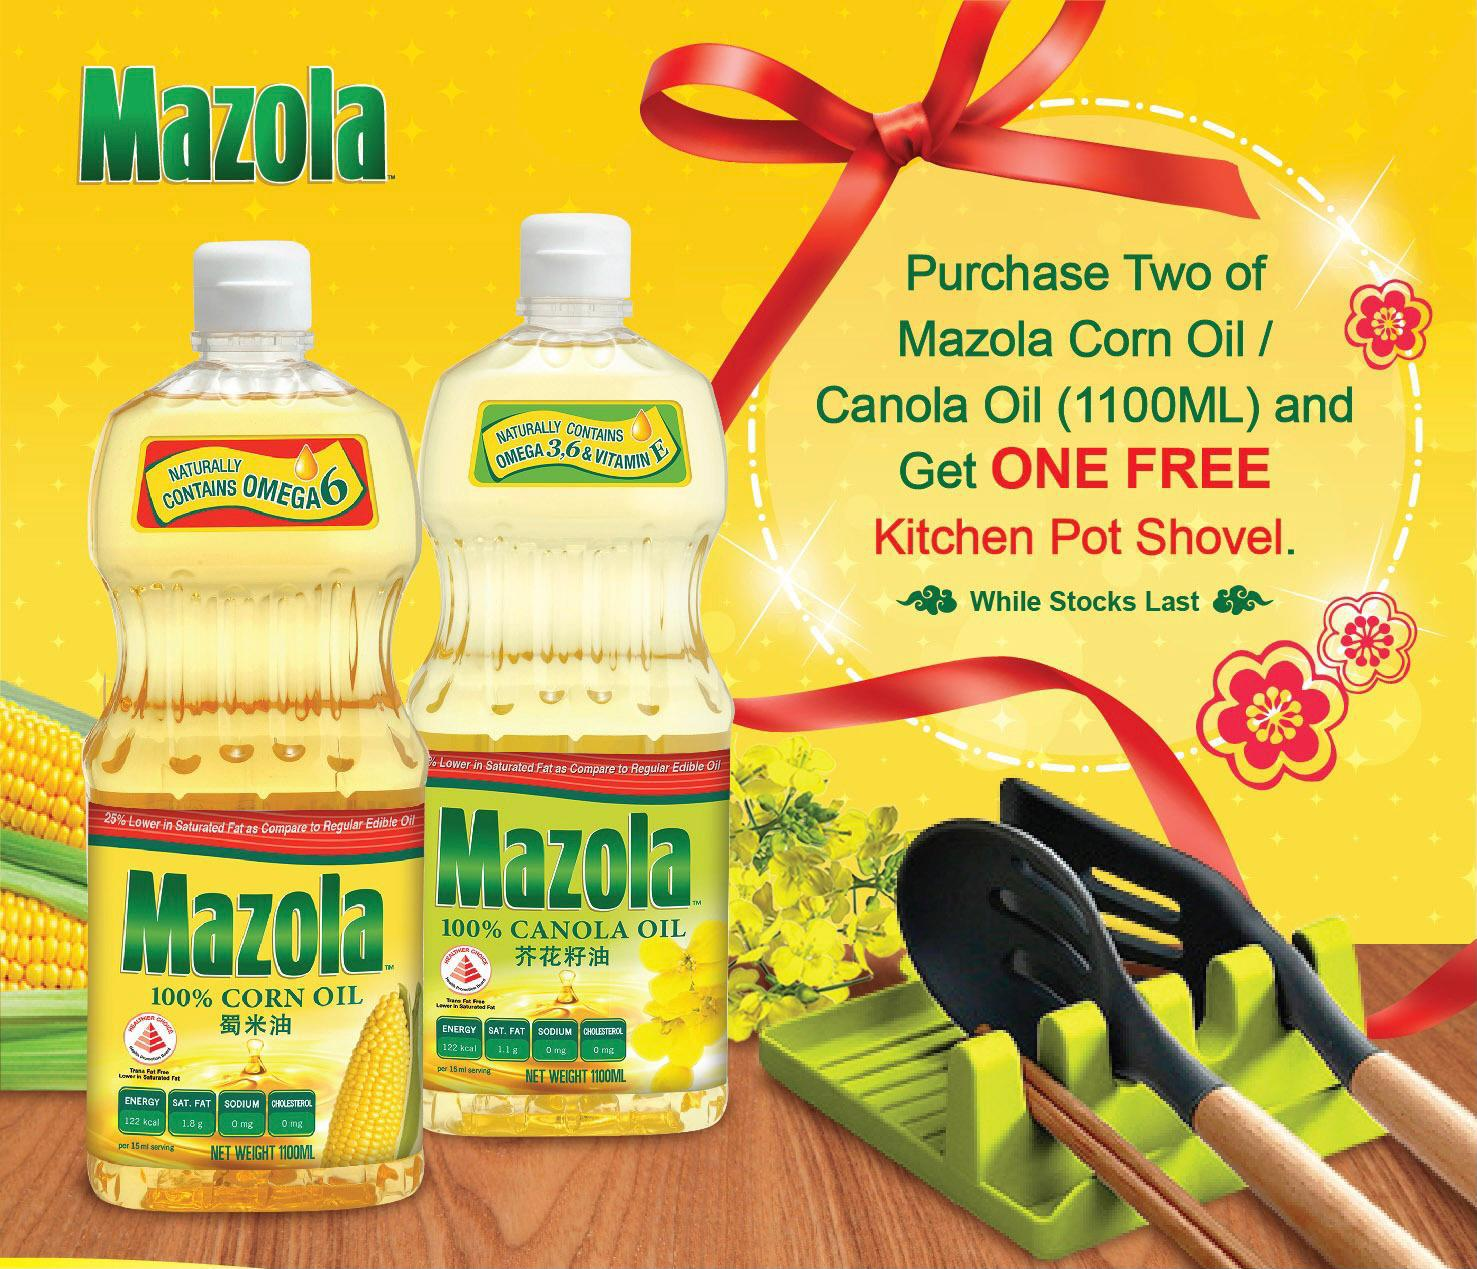 Twin Pack Canola Oil/Mazola Corn Oil with Free Kitchen Pot Shovel